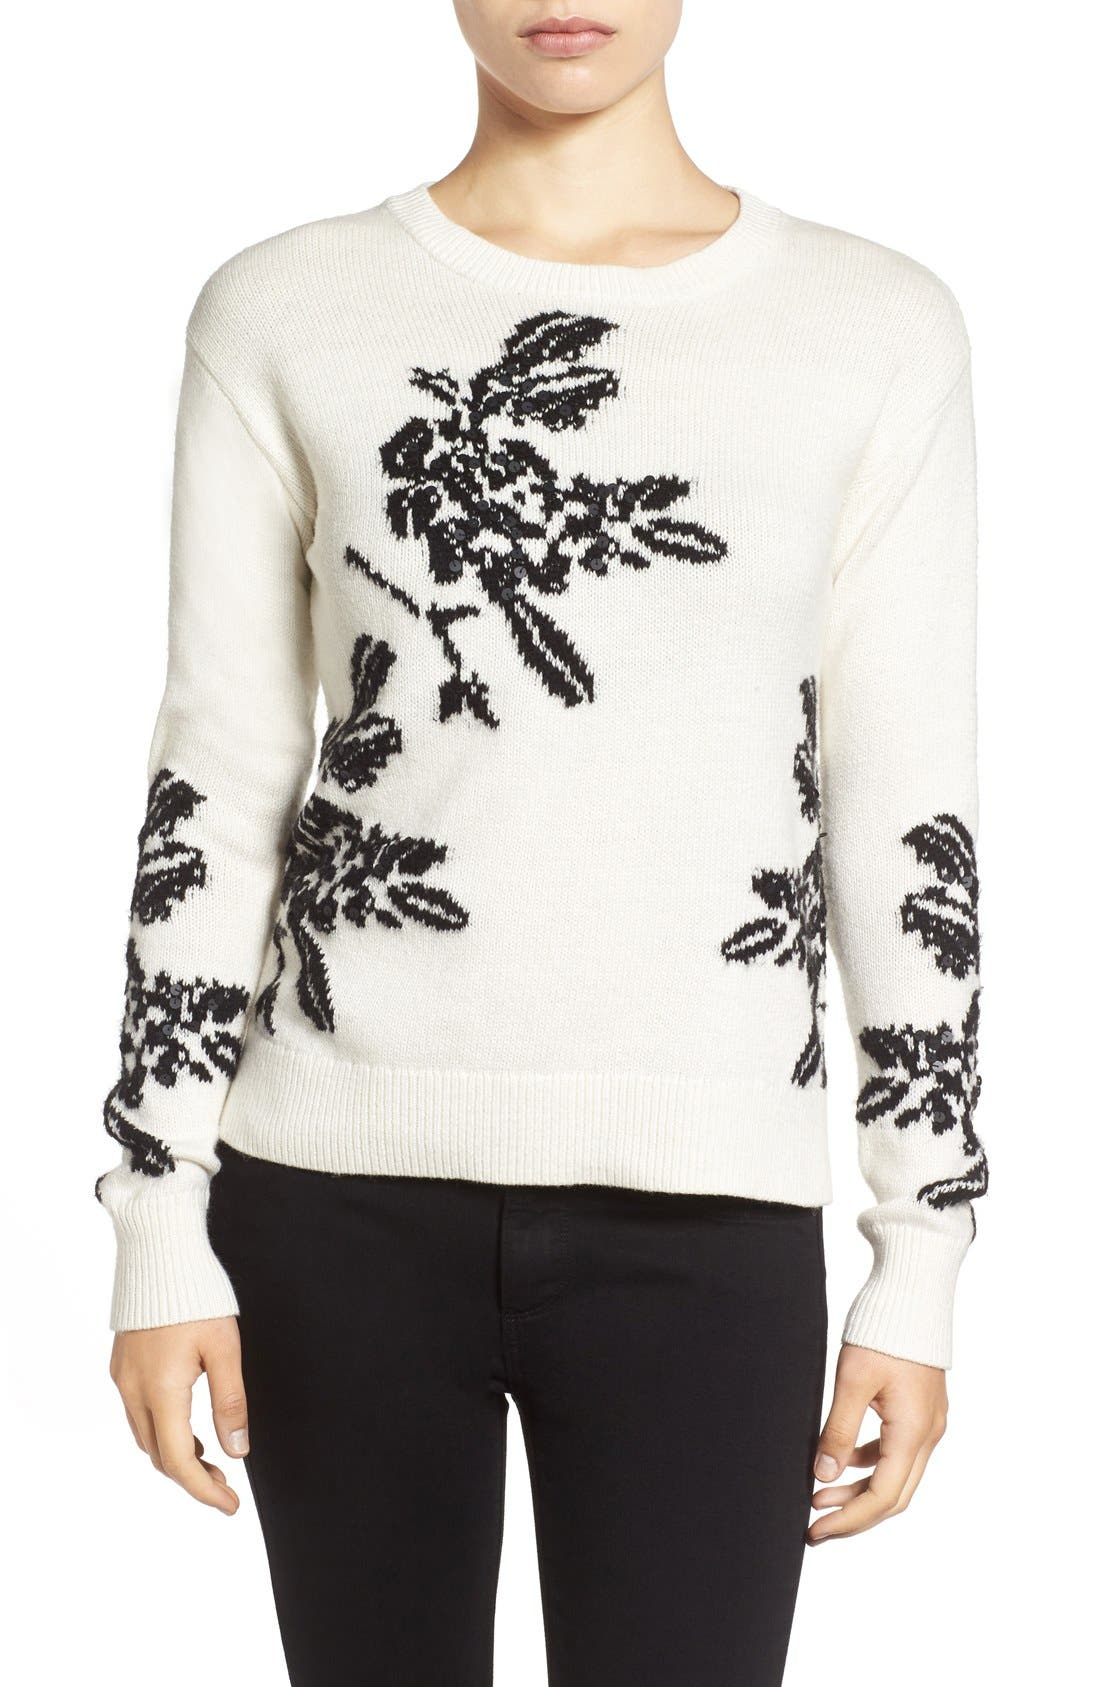 Alternate Image 1 Selected - Halogen® Floral Intarsia Knit Sweater